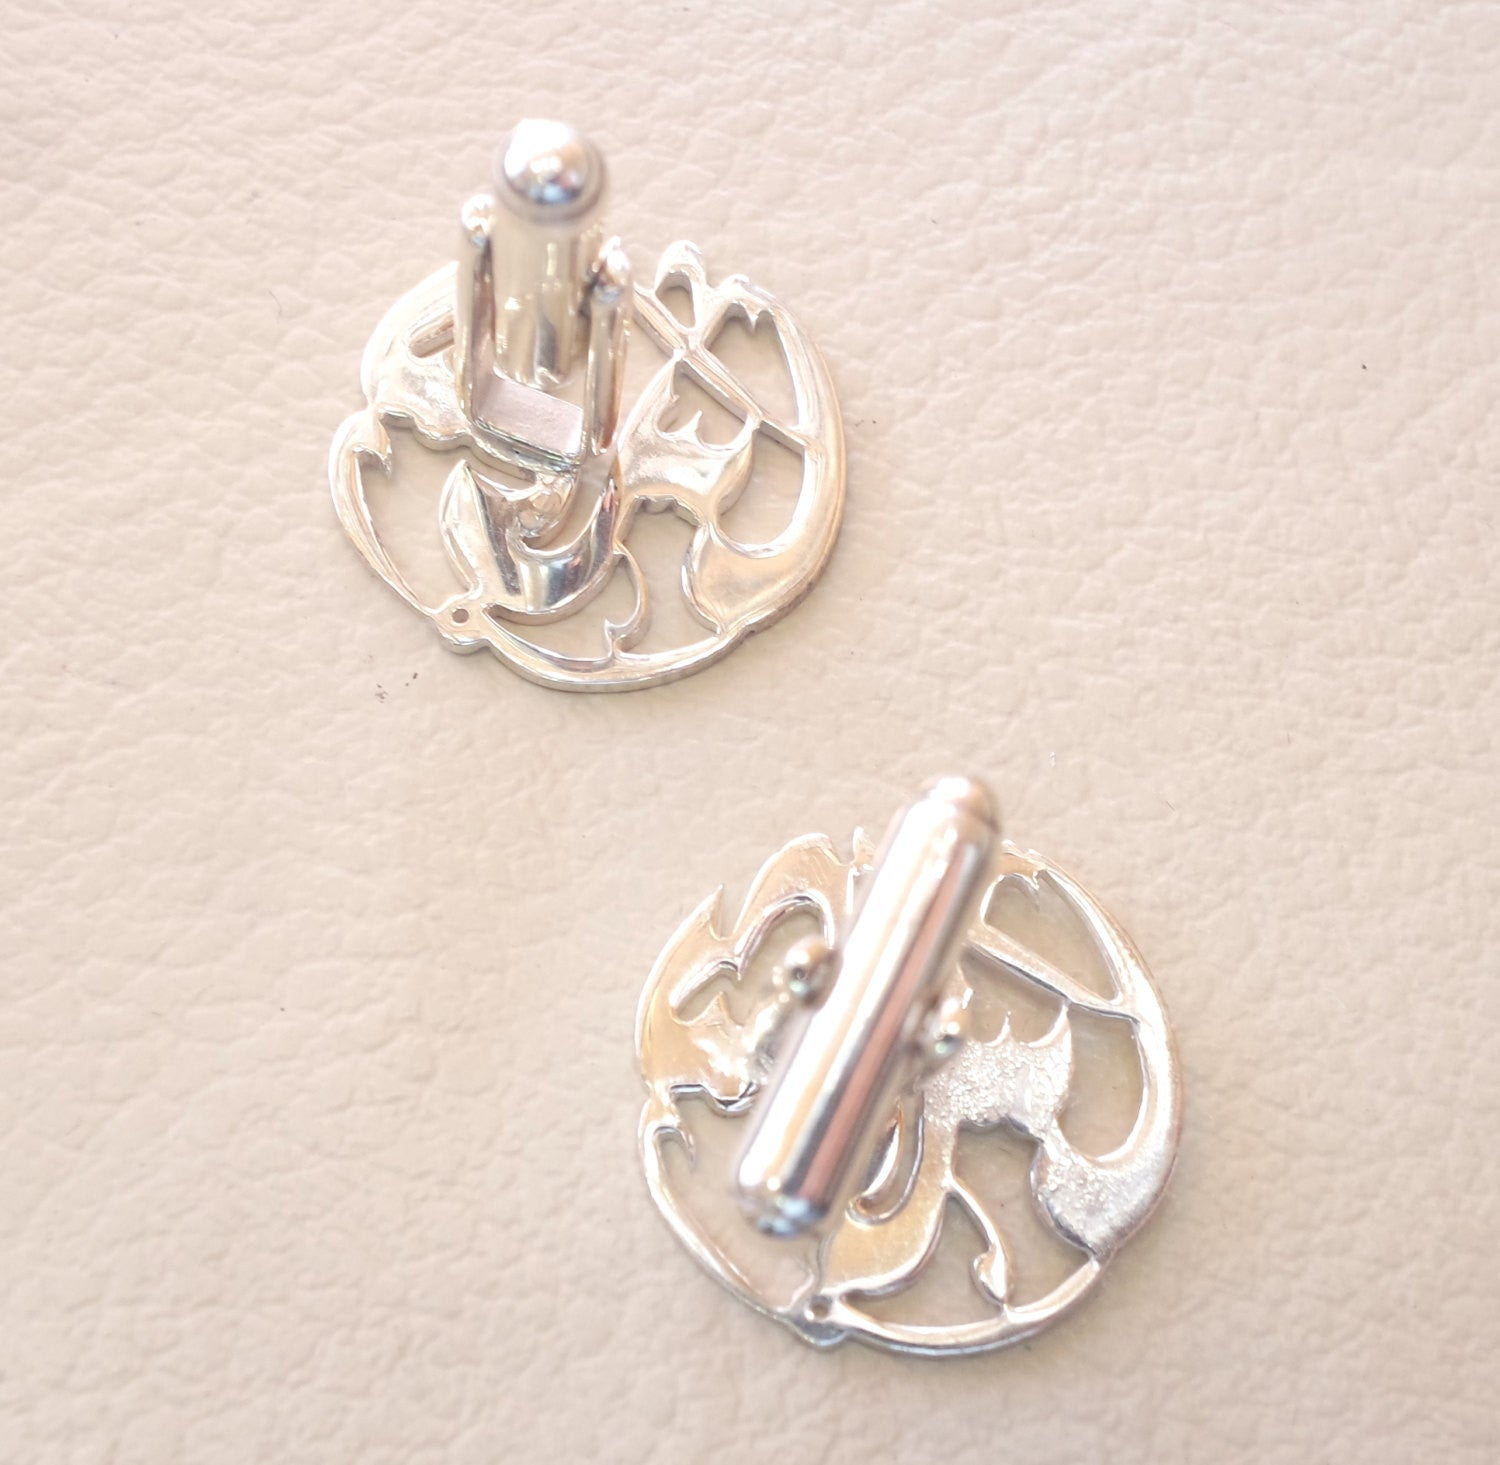 cufflinks , cuflinks  1 name calligraphy arabic customized any name made to order sterling silver 925 heavy men jewelry